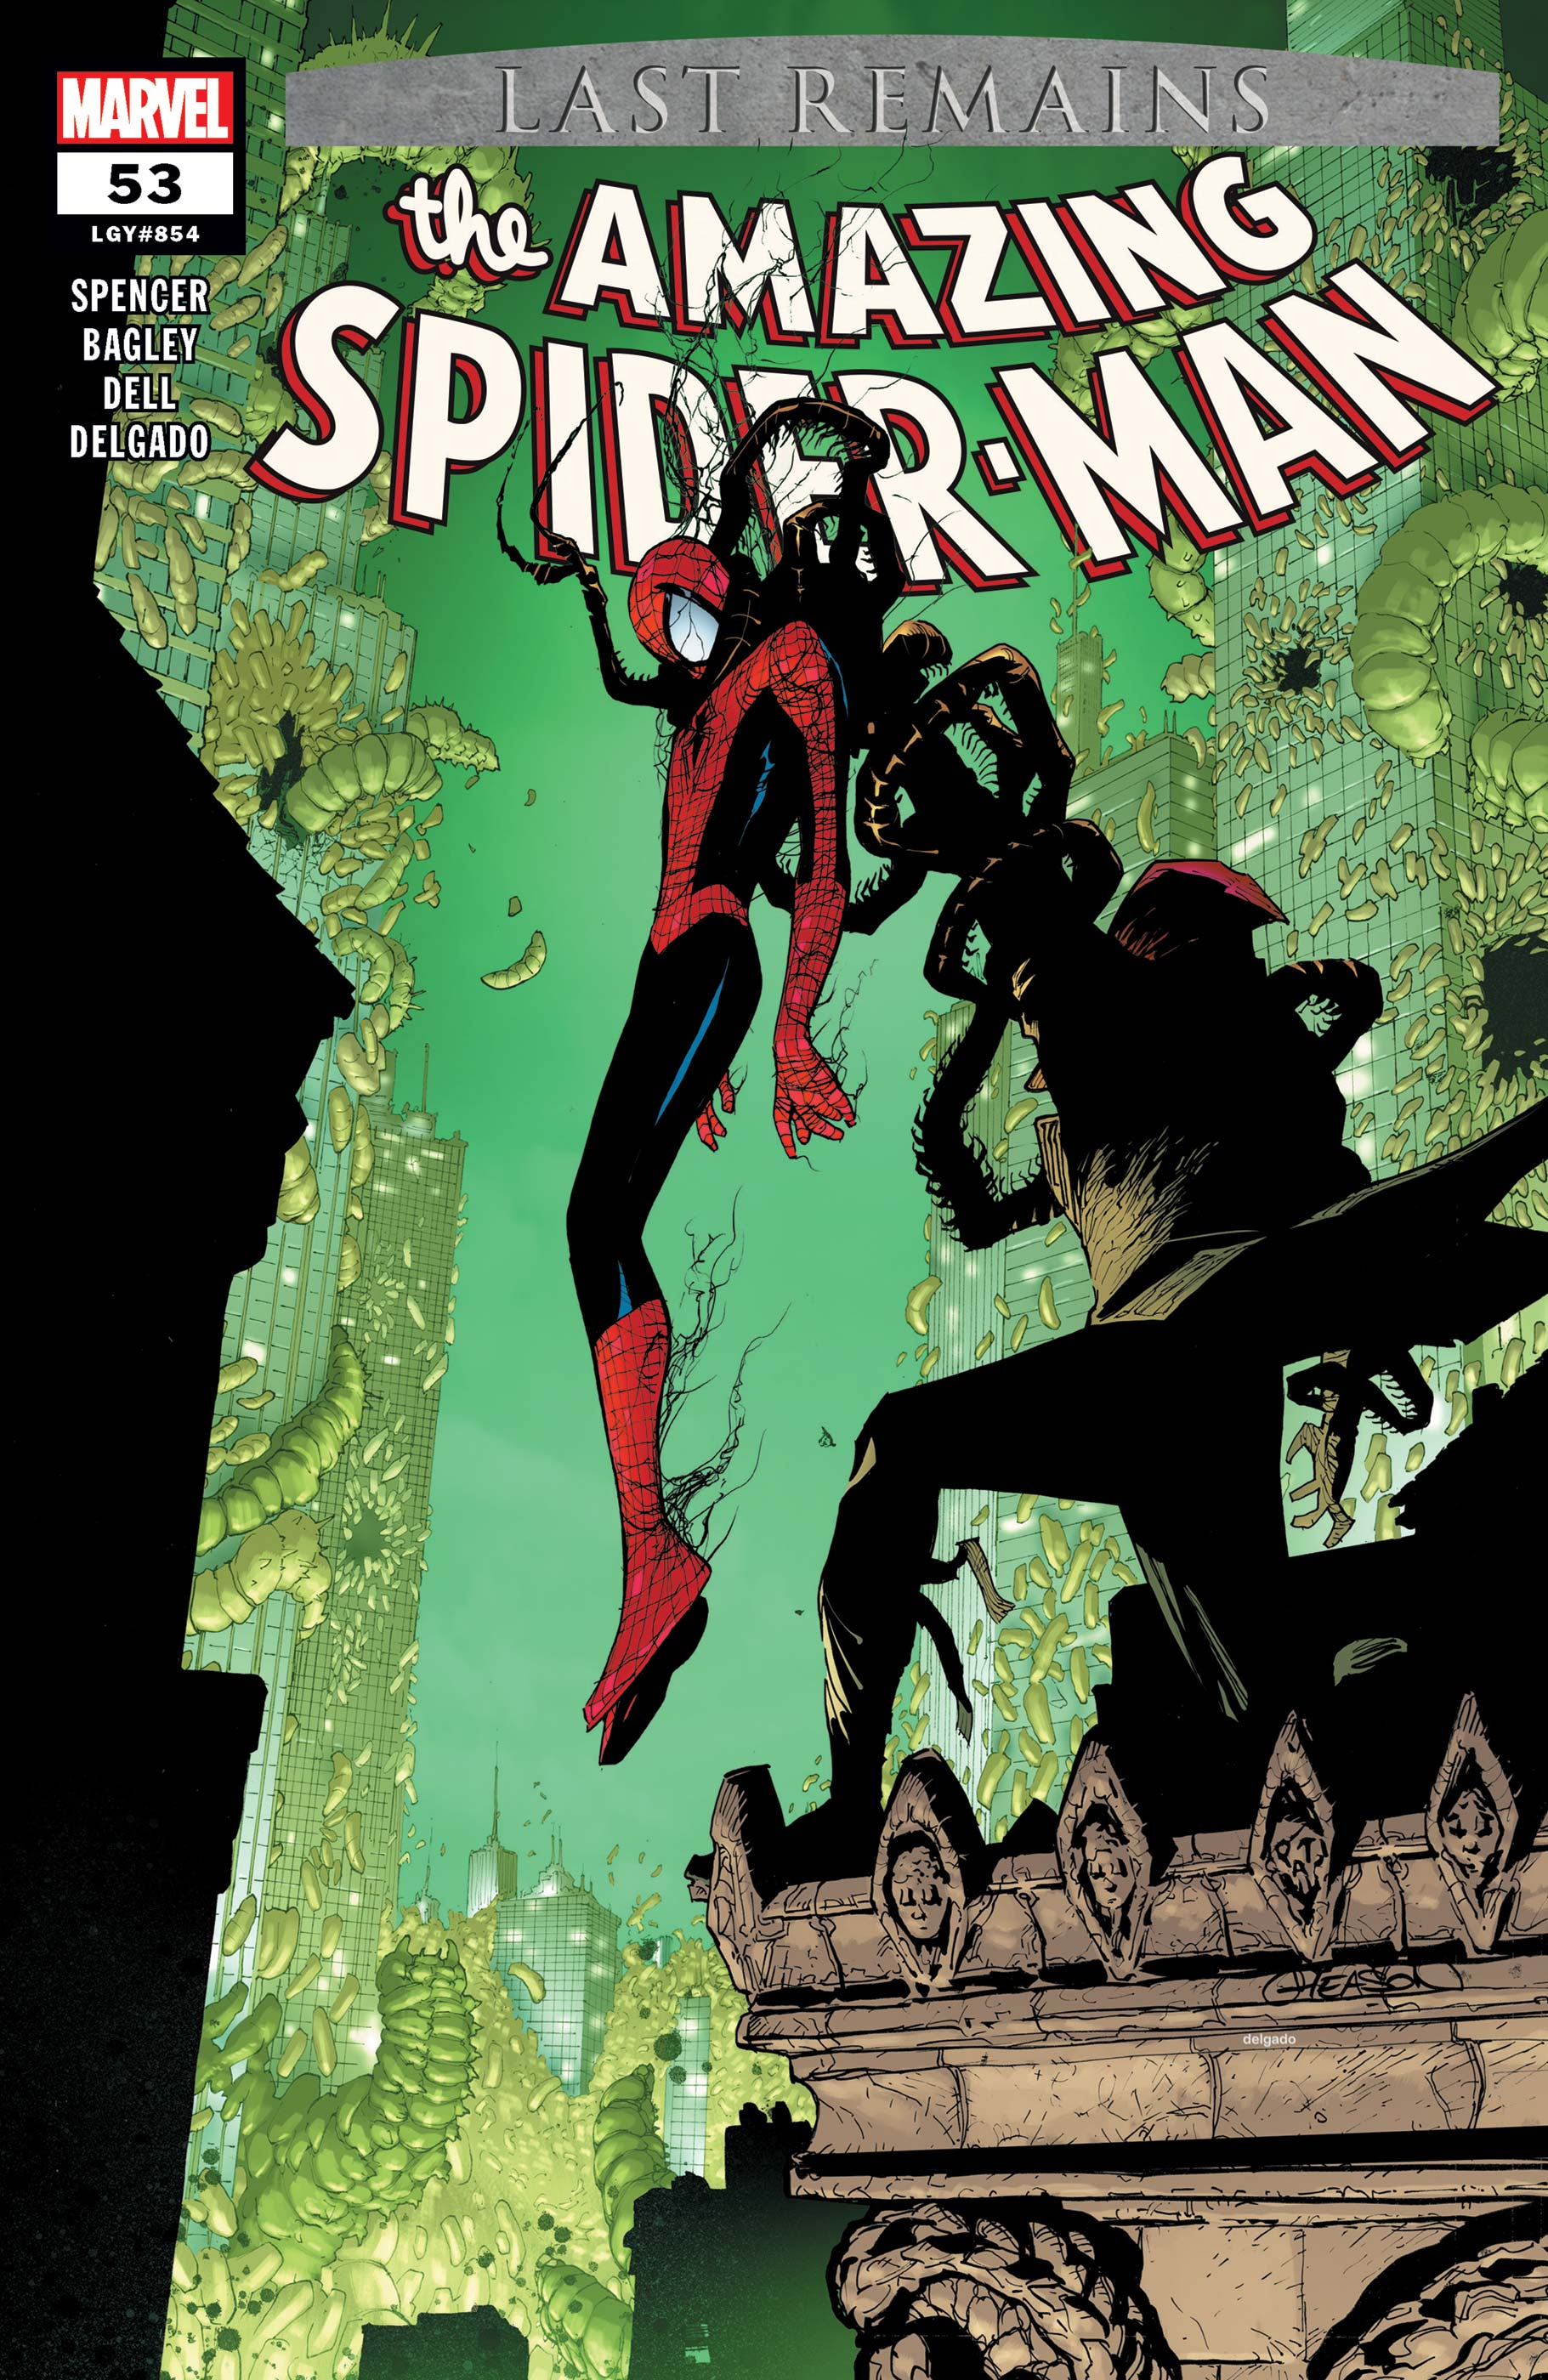 The Amazing Spider-Man (2018) #53